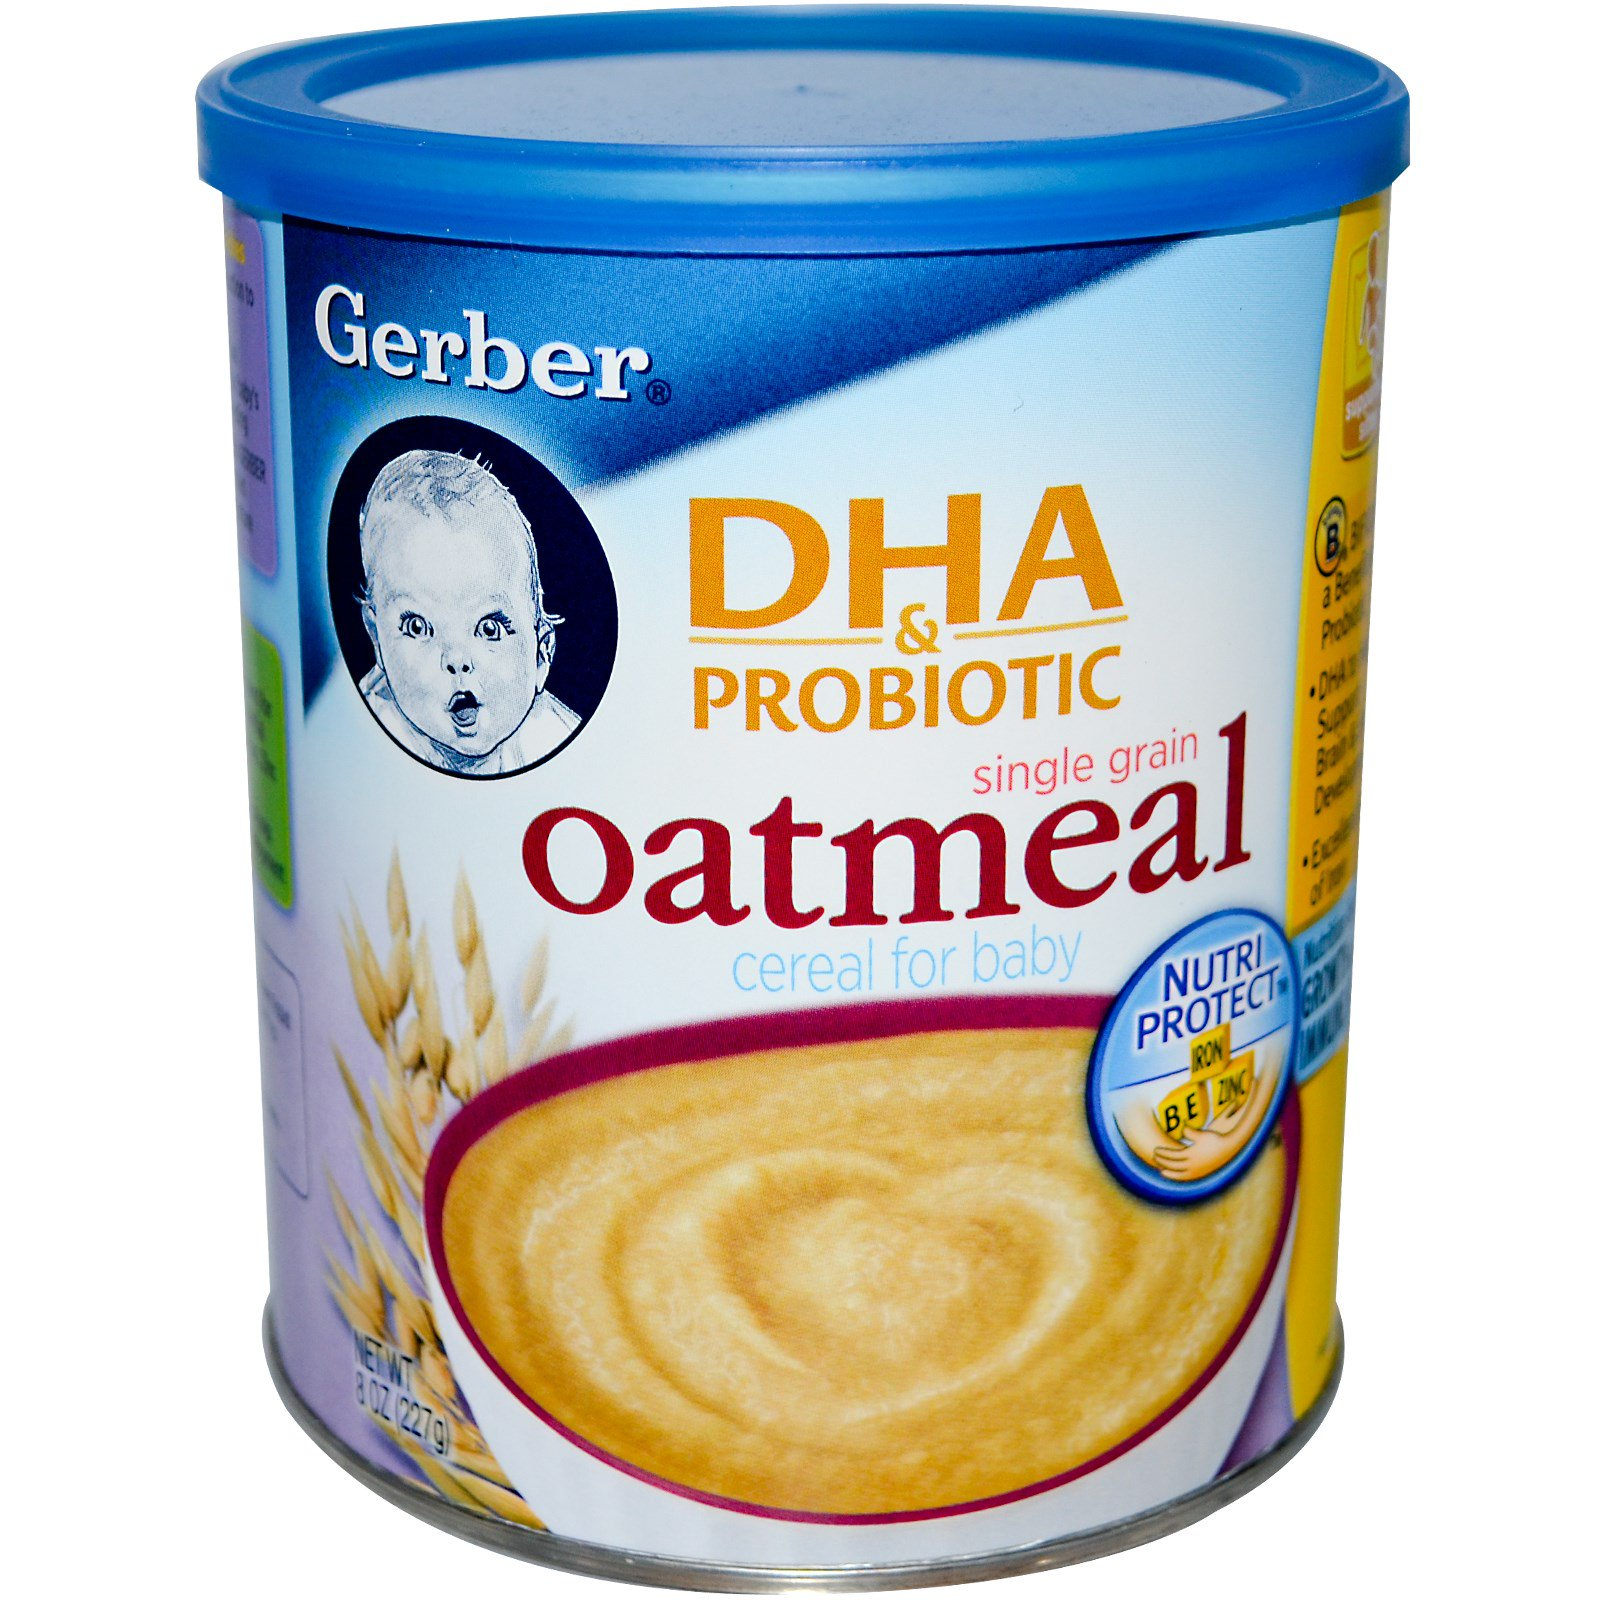 Gerber, DHA & Probiotic, Single Grain Oatmeal Cereal For